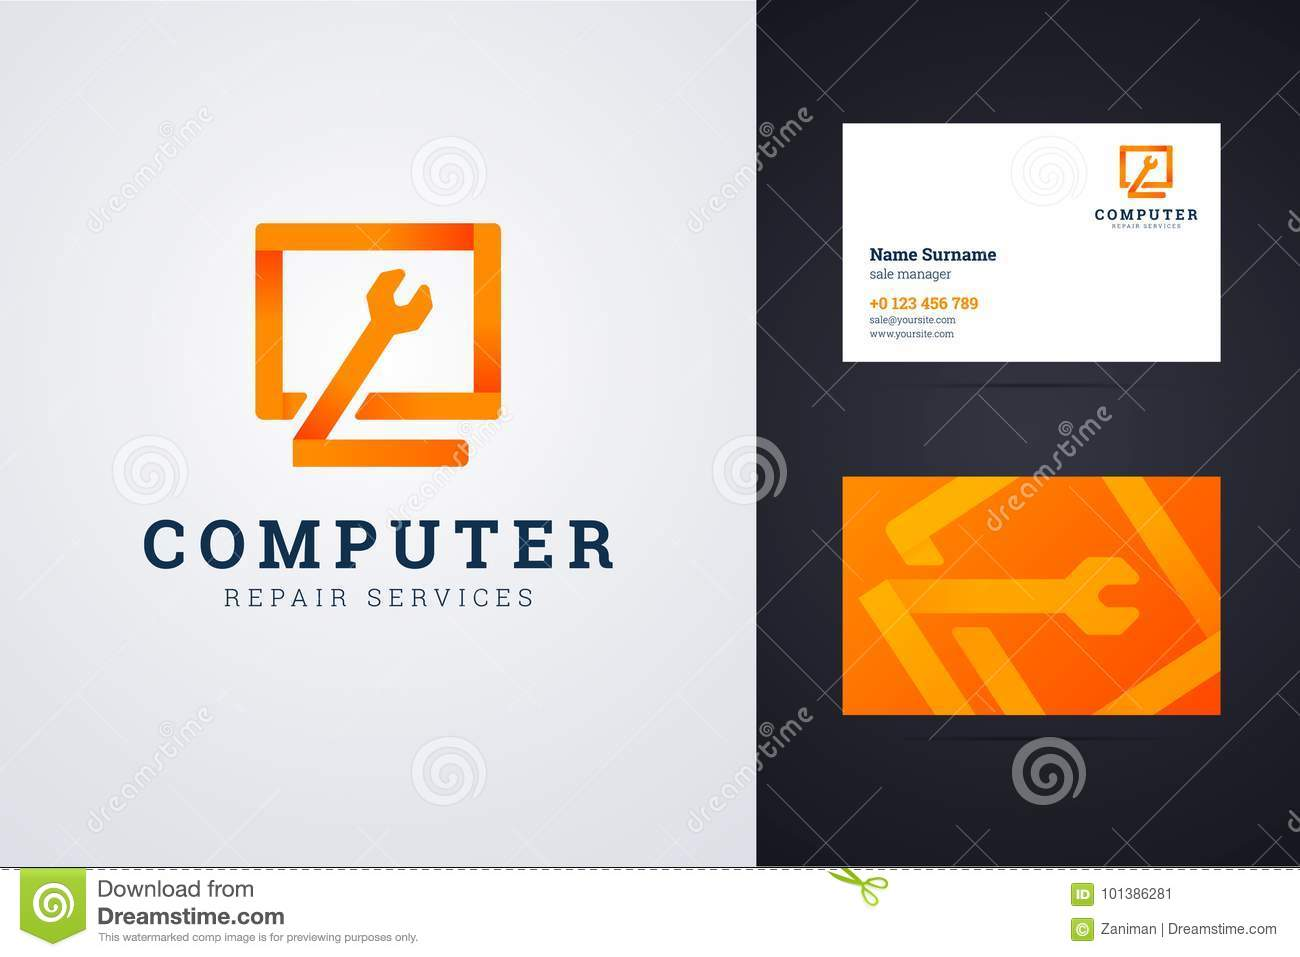 Computer repair service logo and business card template stock vector computer repair service logo and business card template wajeb Image collections